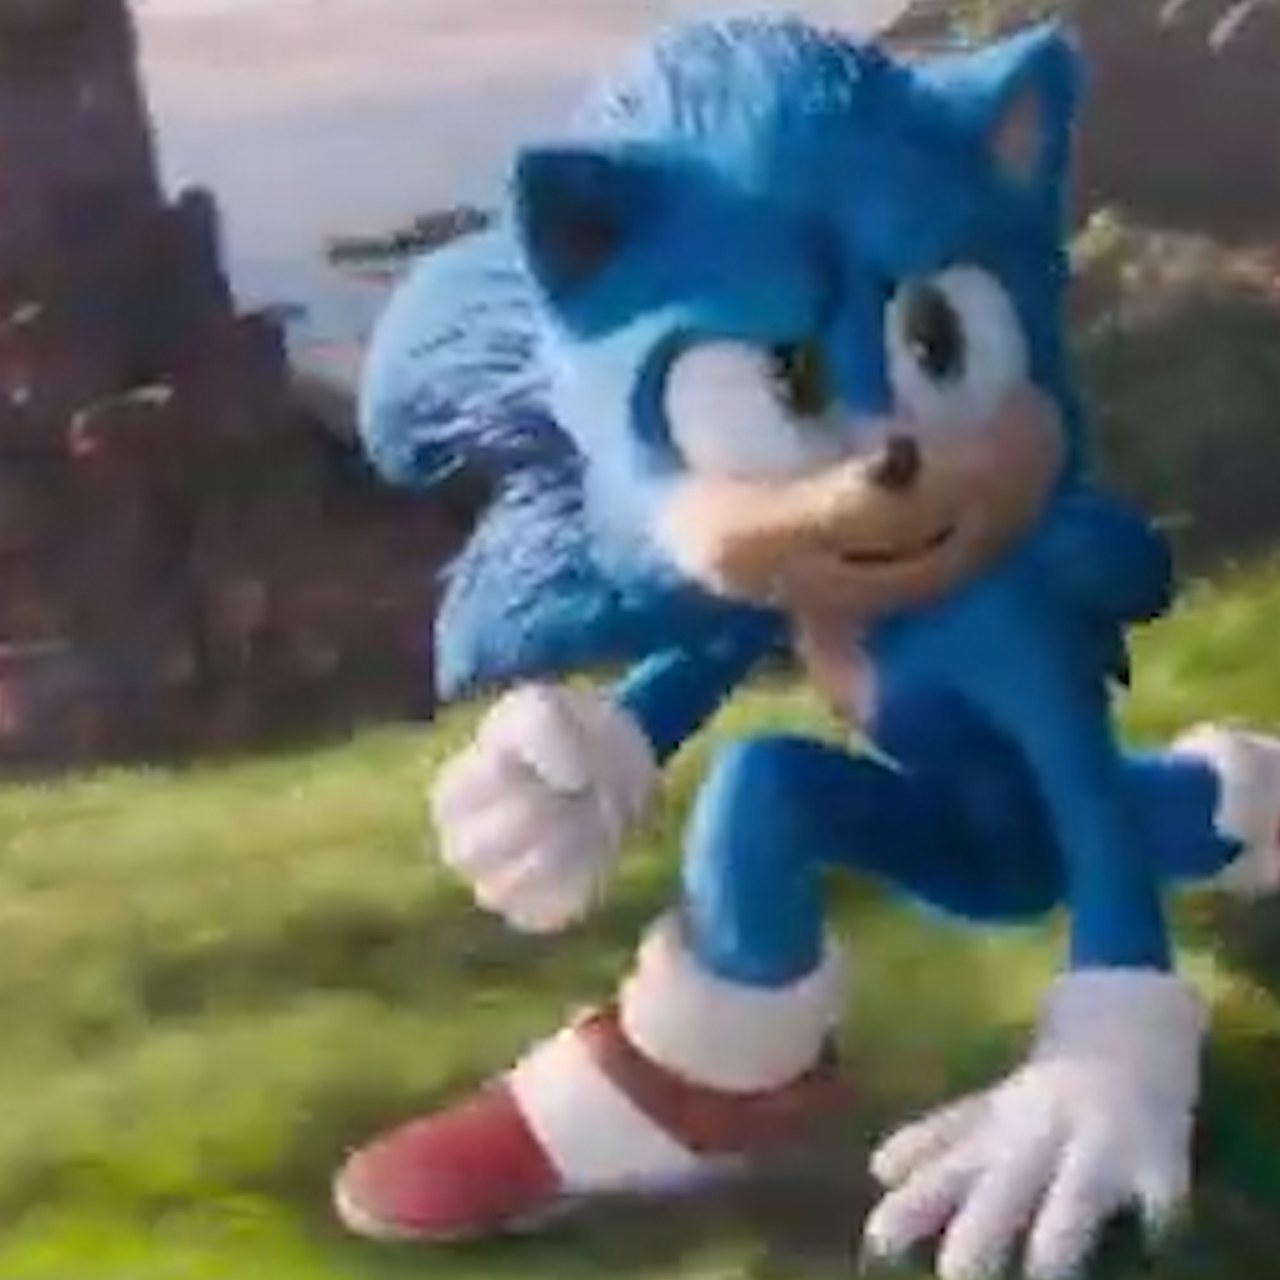 Sonic The Hedgehog Streaming How To Watch Online After Early Release Date Announced